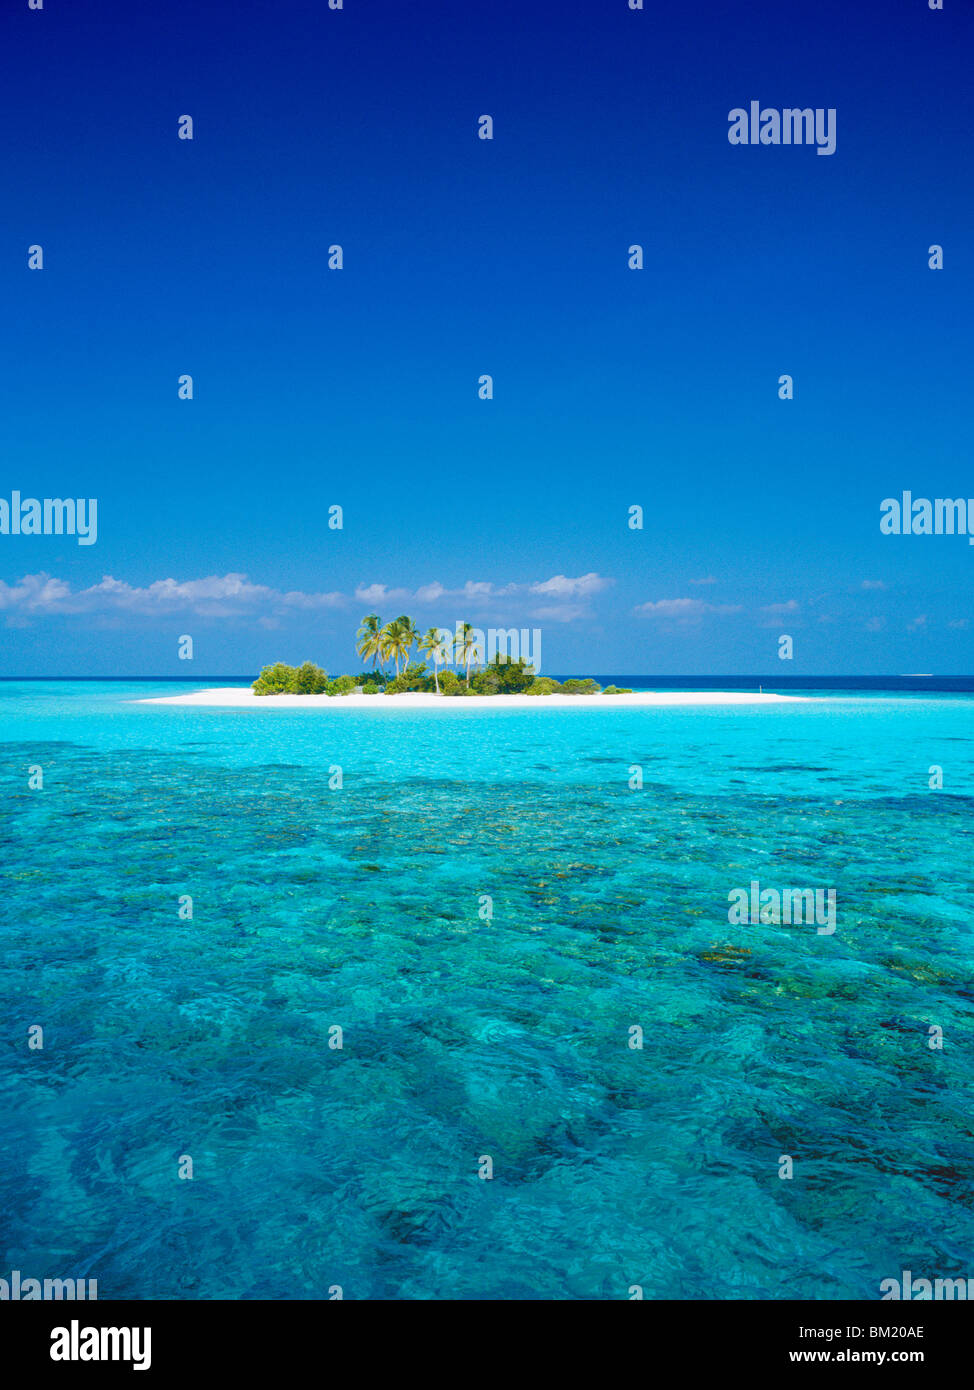 Deserted island, Maldives, Indian Ocean Stock Photo